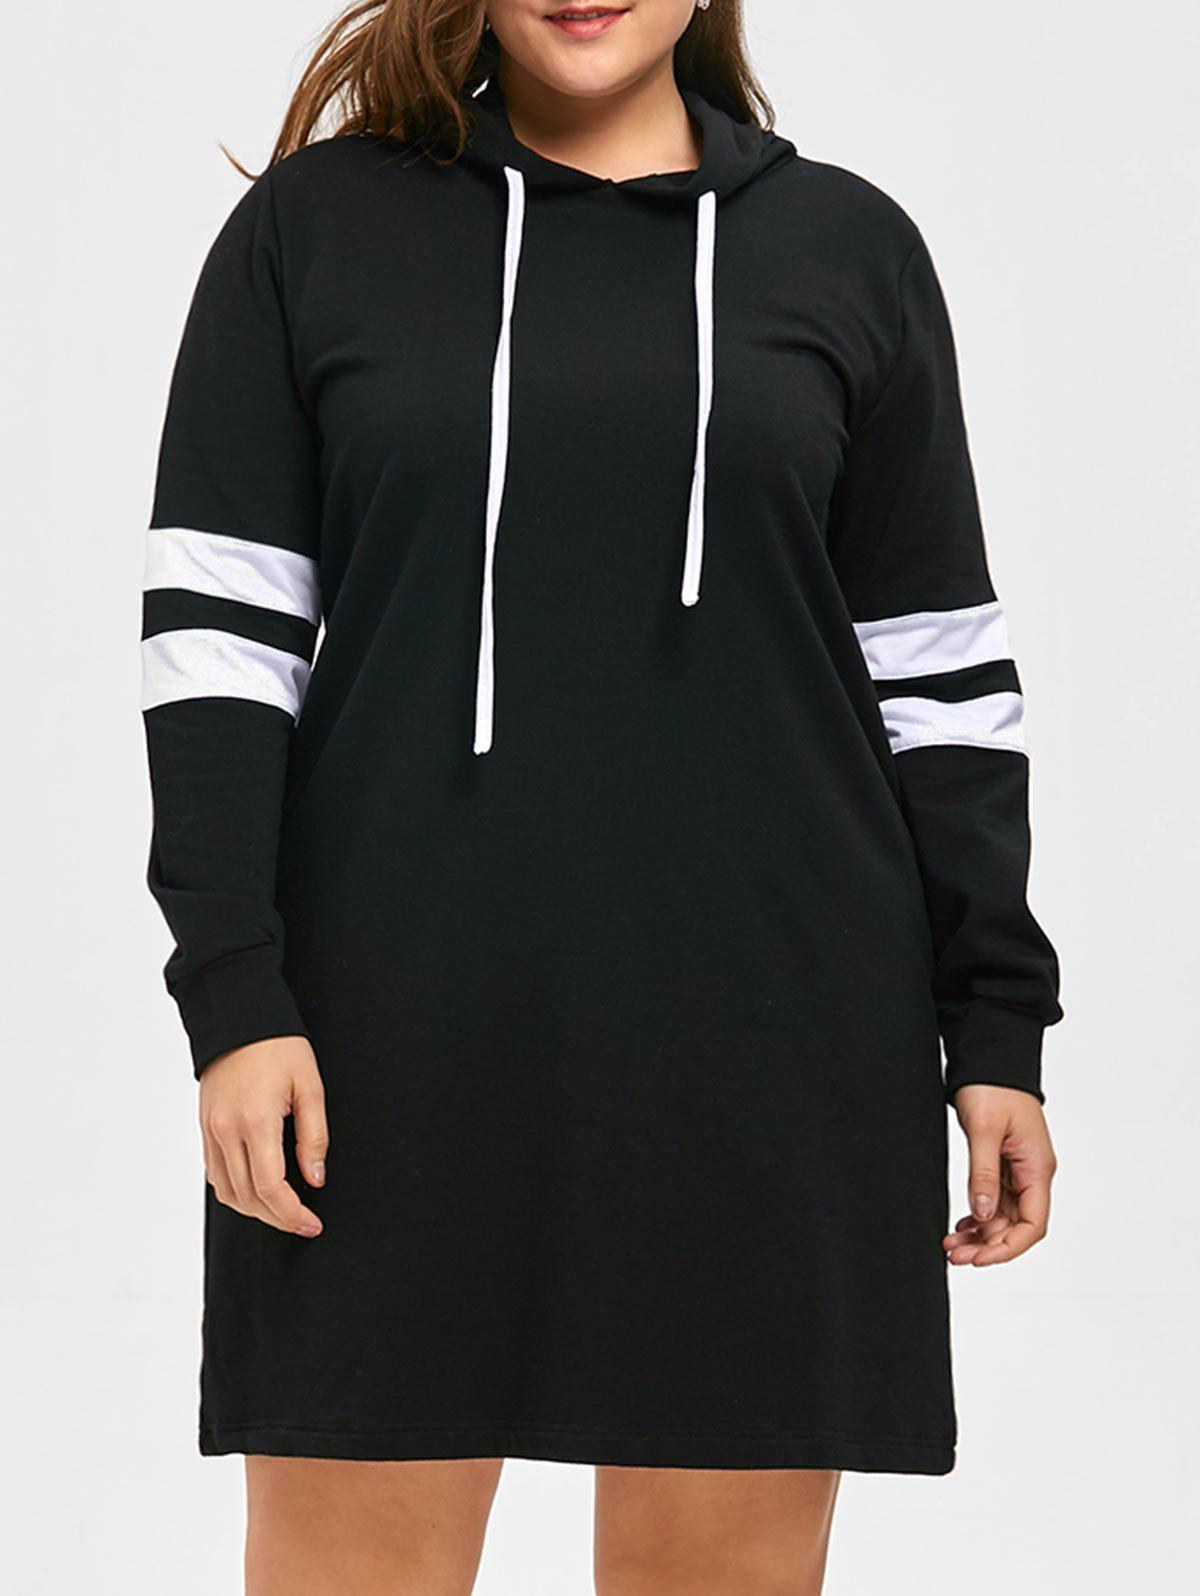 Plus Size Longline Striped HoodieWOMEN<br><br>Size: XL; Color: BLACK; Material: Cotton,Polyester; Shirt Length: Long; Sleeve Length: Full; Style: Casual; Pattern Style: Striped; Season: Fall,Spring; Weight: 0.5500kg; Package Contents: 1 x Hoodie;